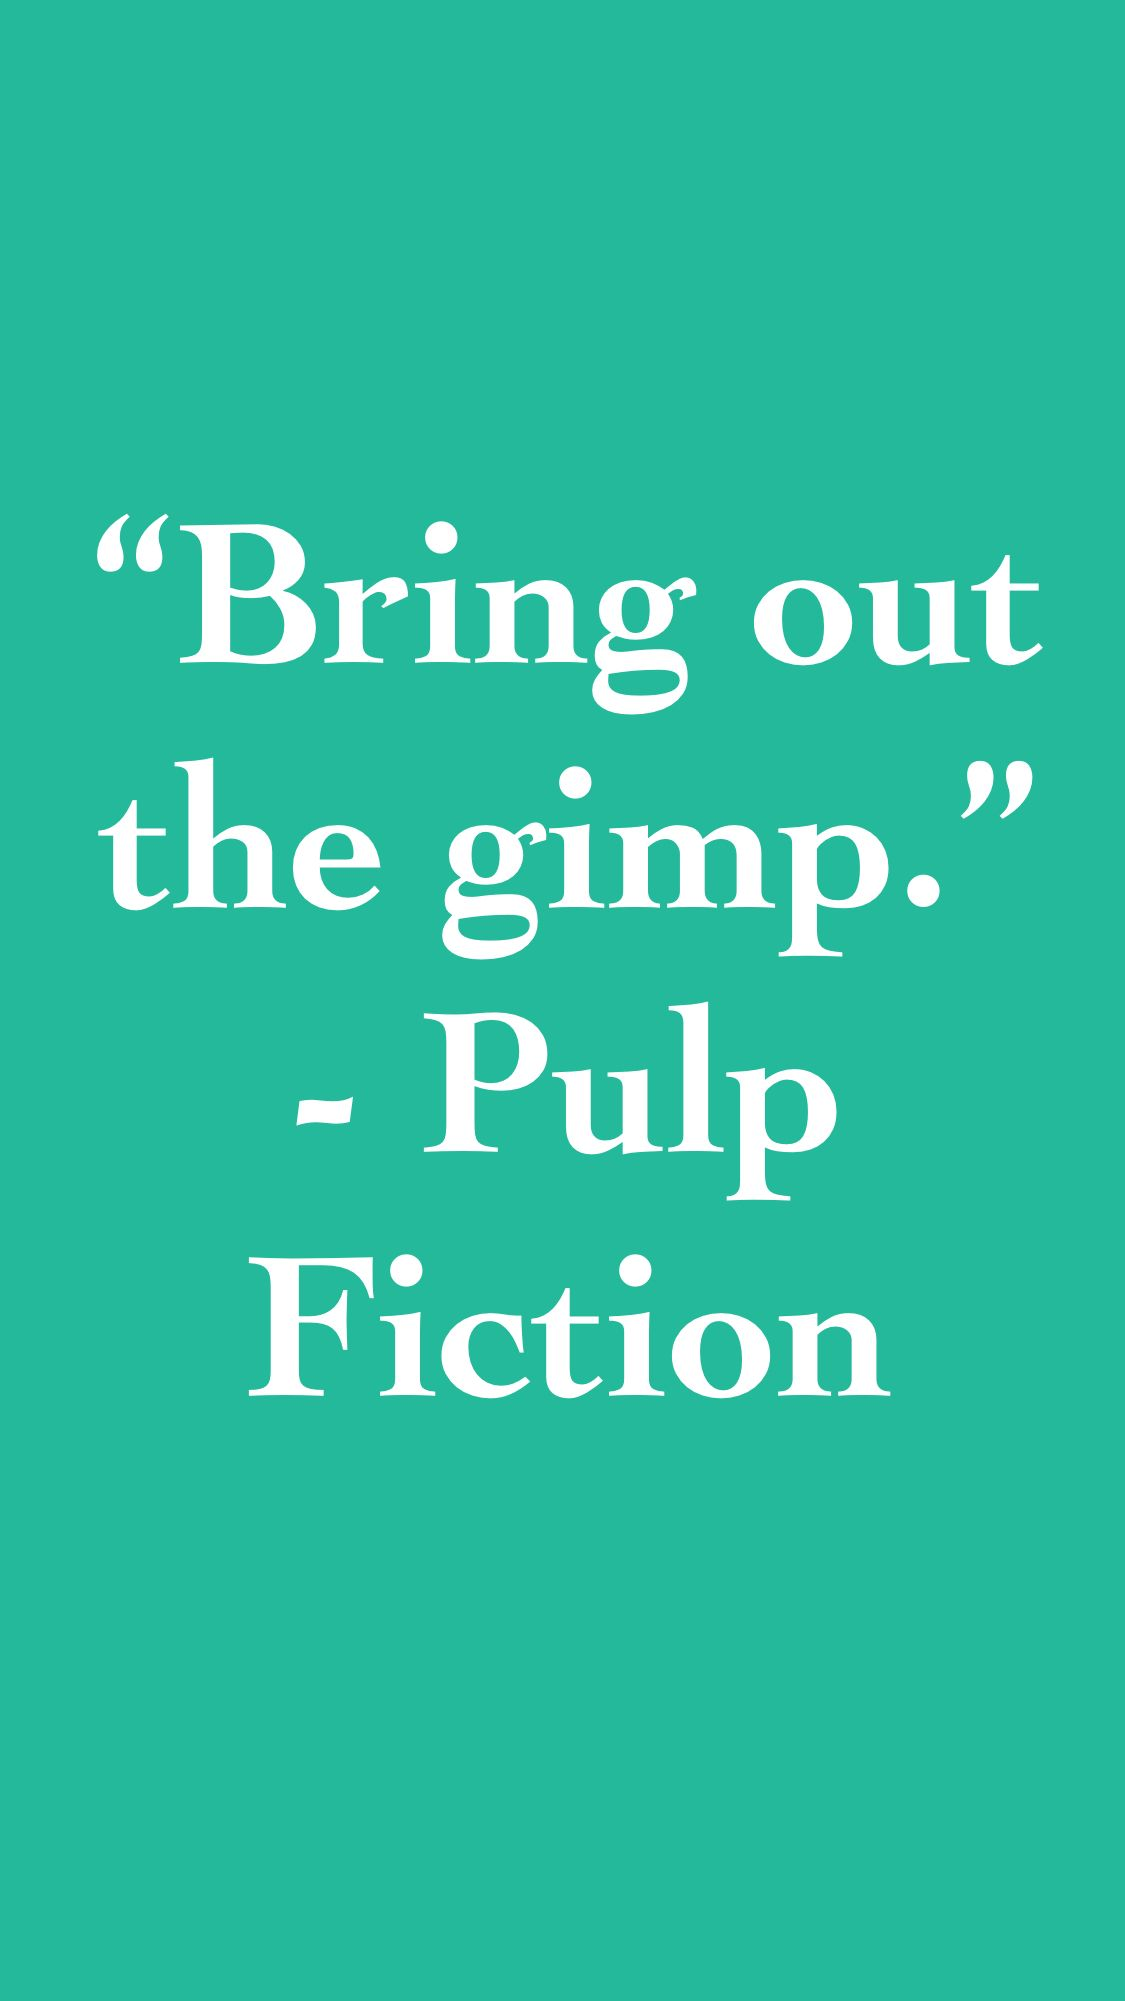 Bring Out The Gimp Pulp Fiction Quotes Movie Moviequotesapp